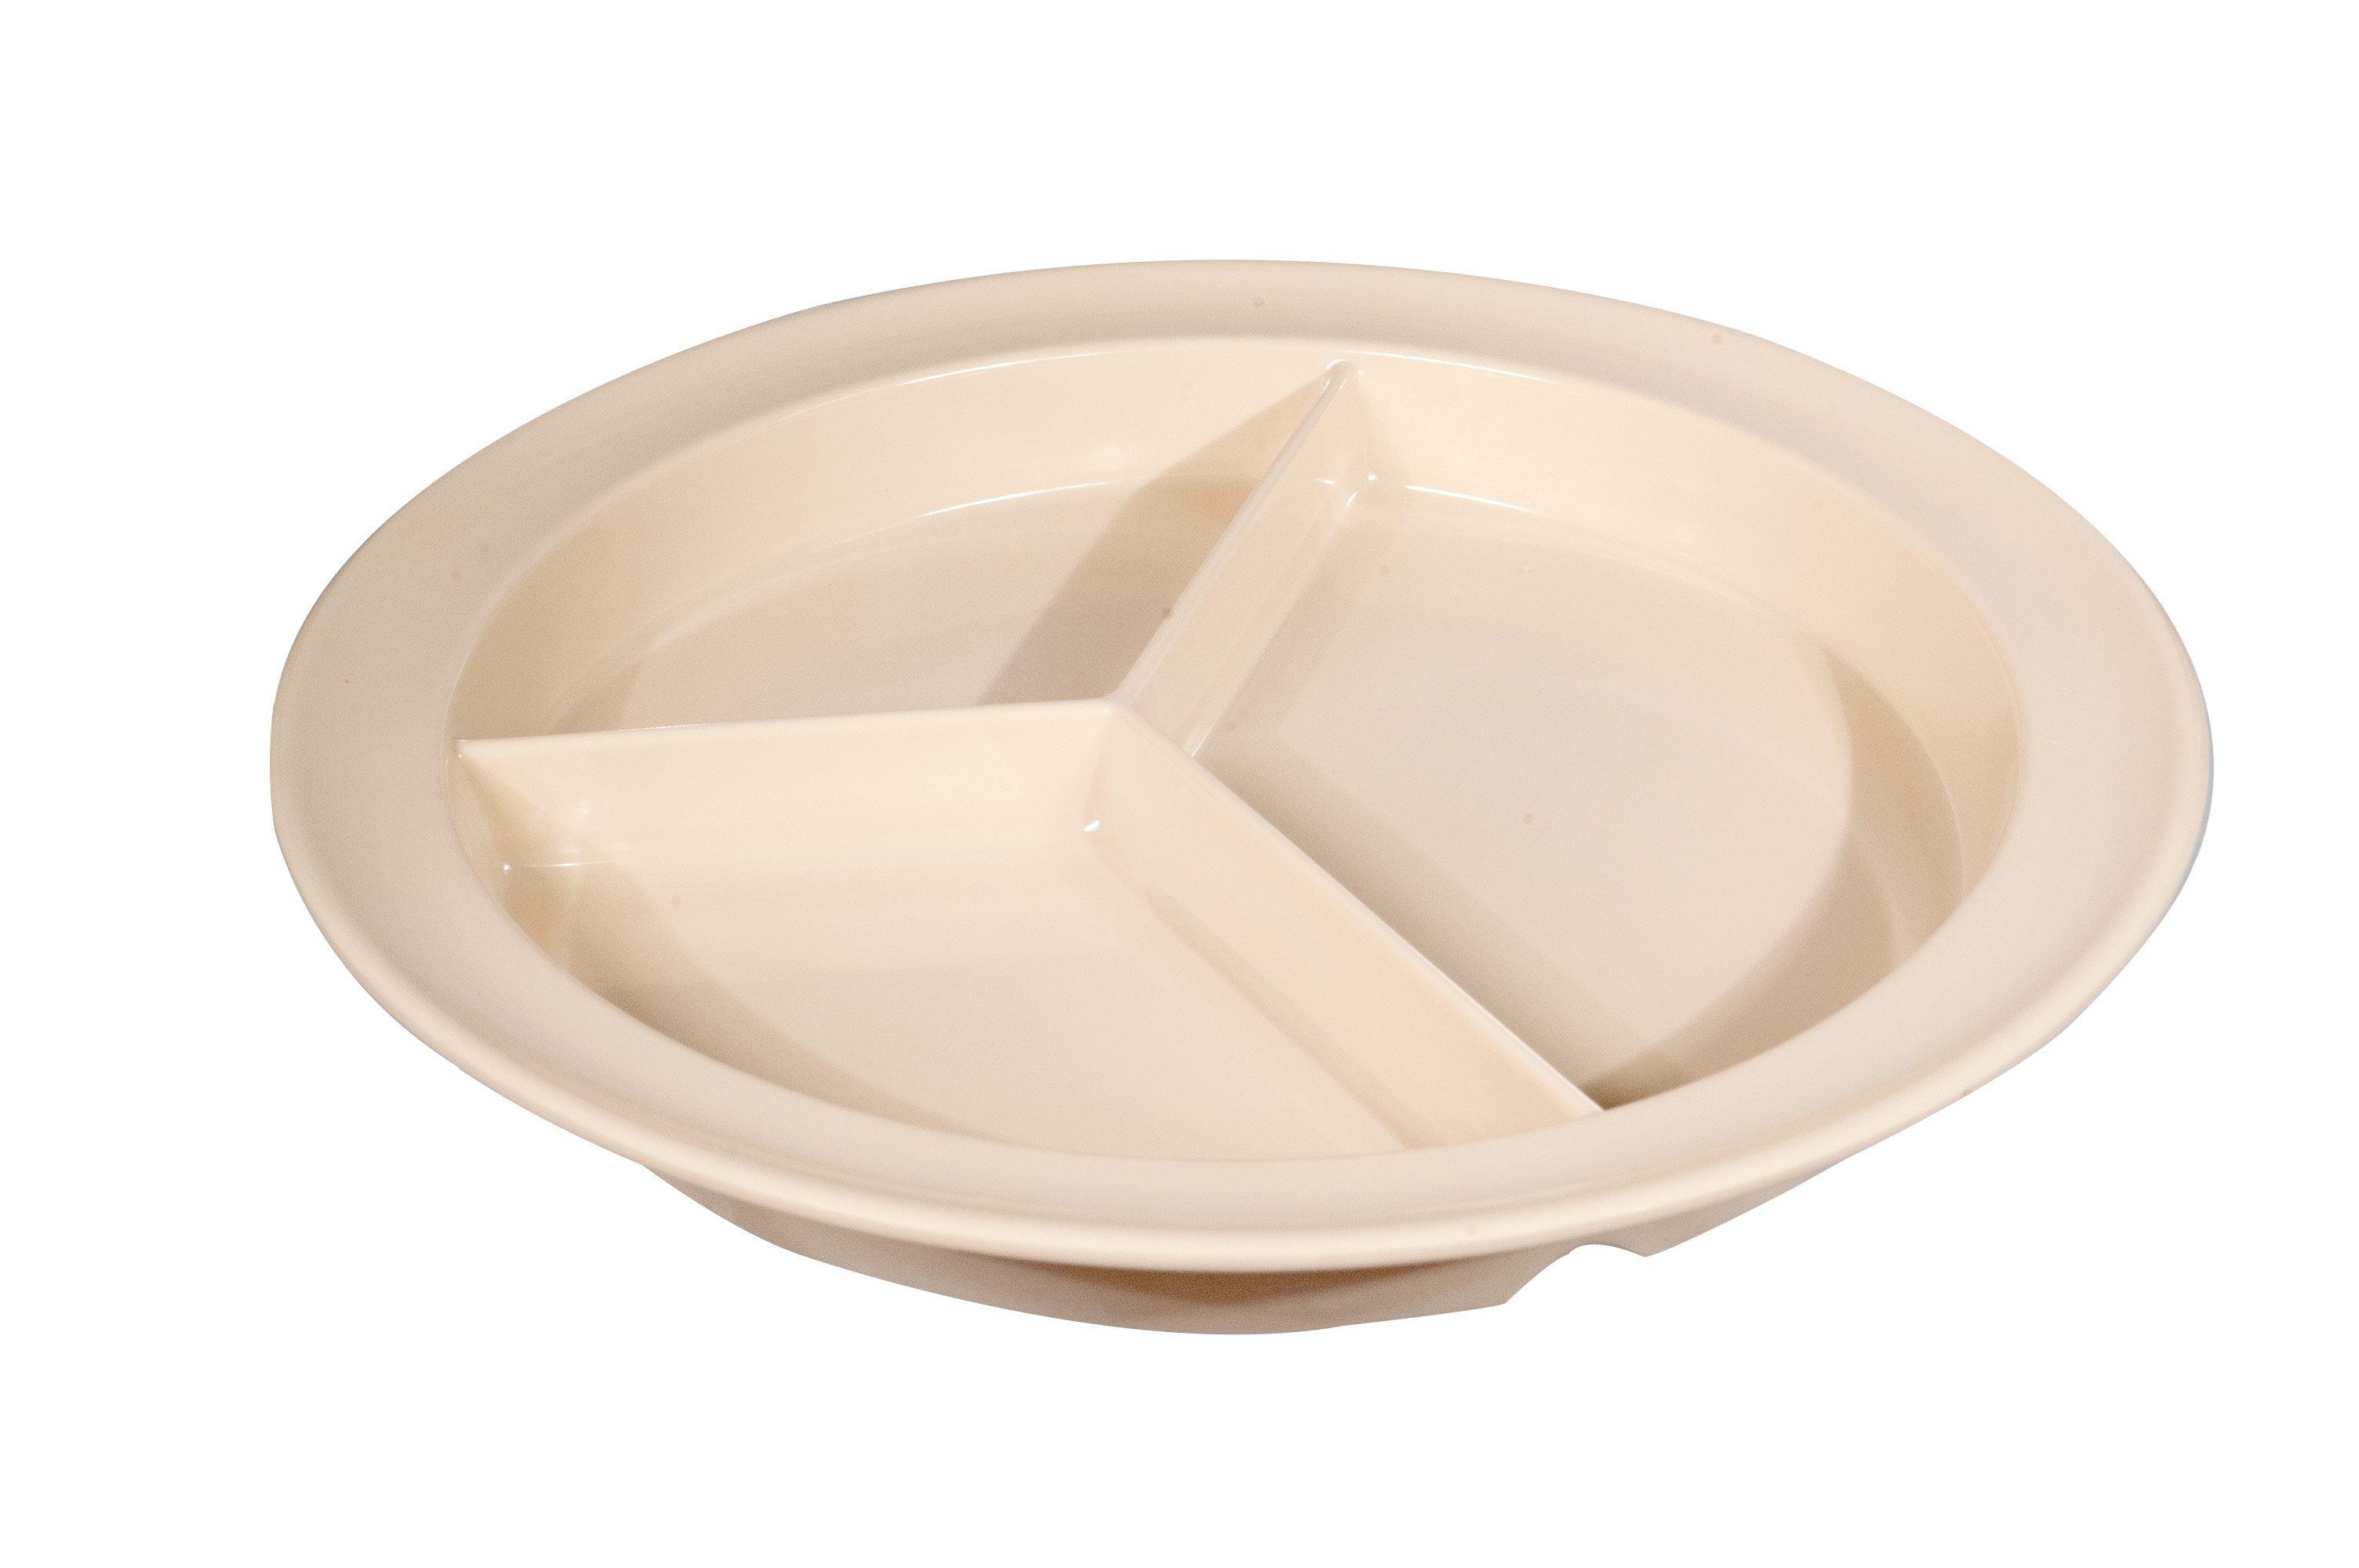 Three-Section Melamine Plate- 9-Inch Diameter